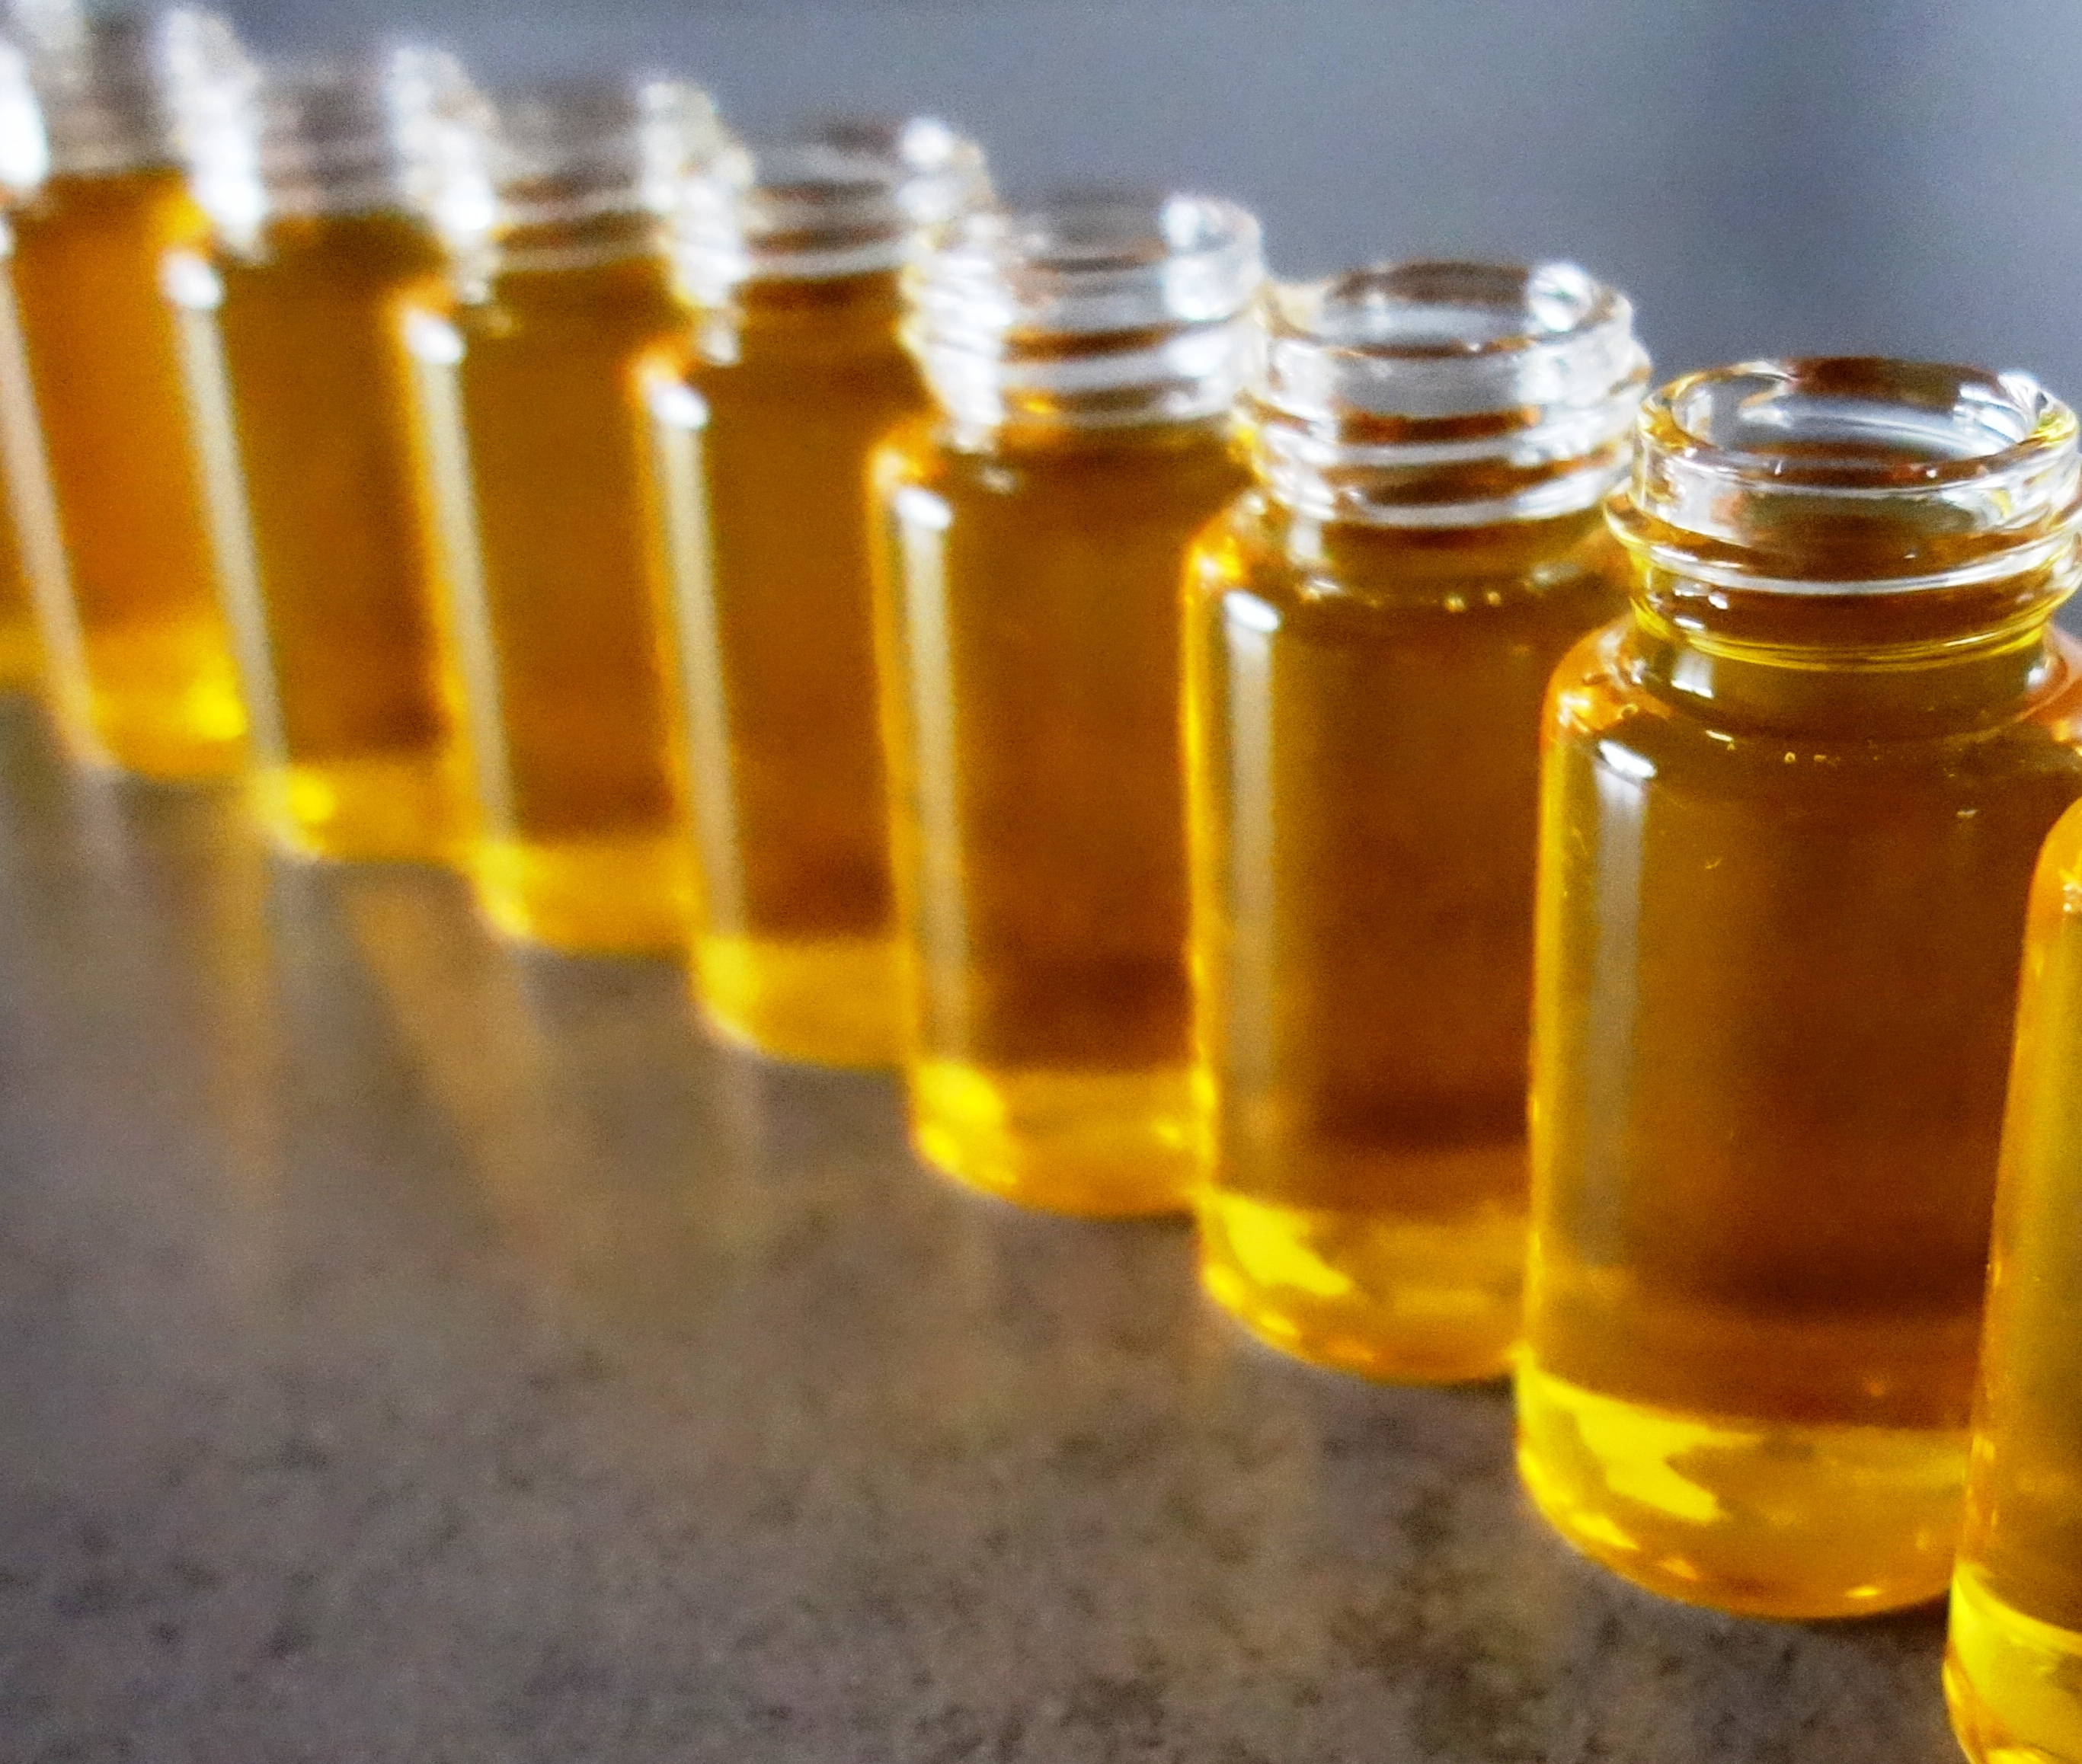 Urine Therapy A New Health Fad Sbs Life